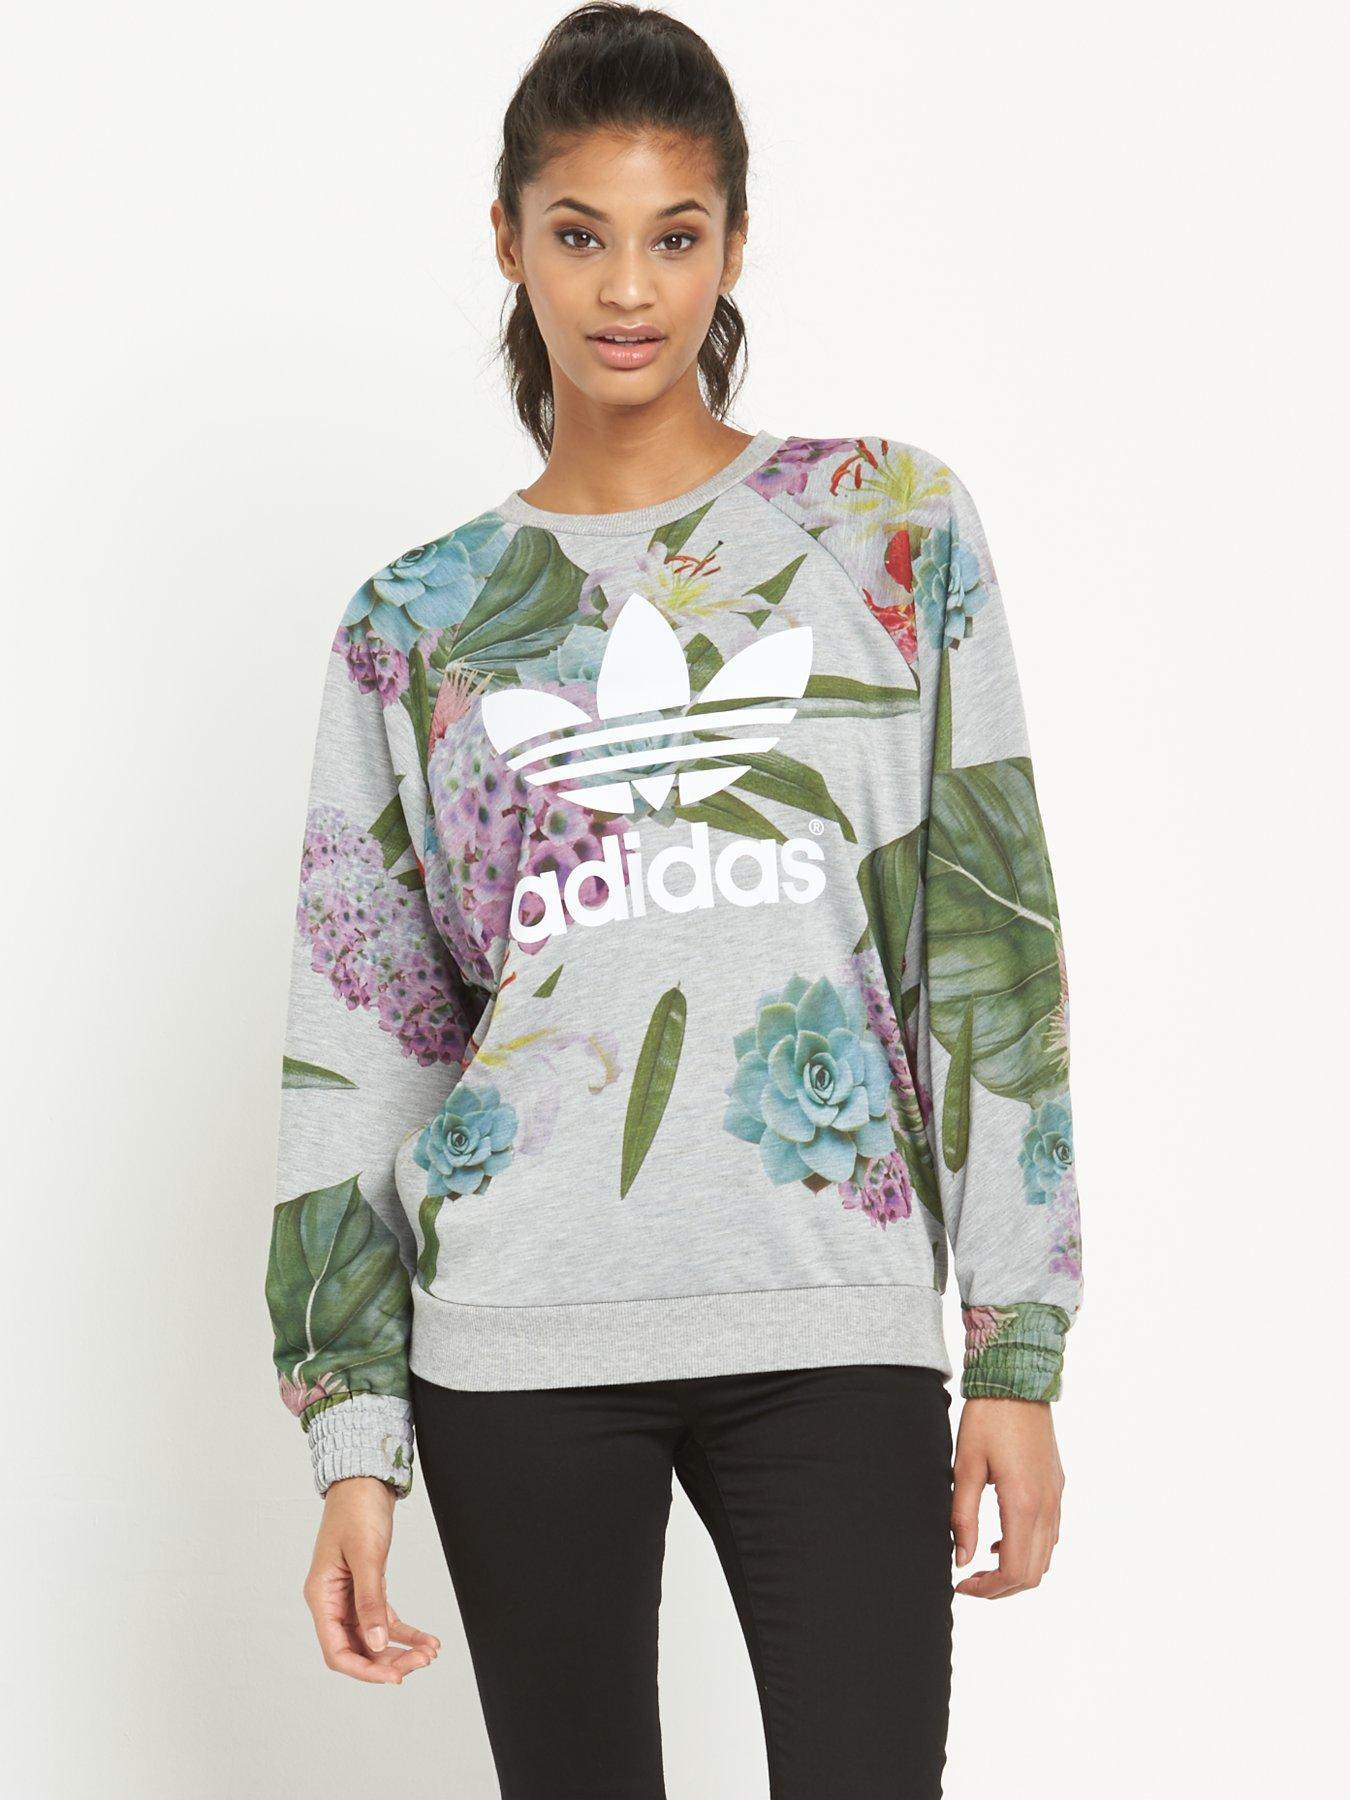 Floral New Sweatshirt gt; White Adidas Free Off35 adidas Shoes Shipping 6pTAxqw